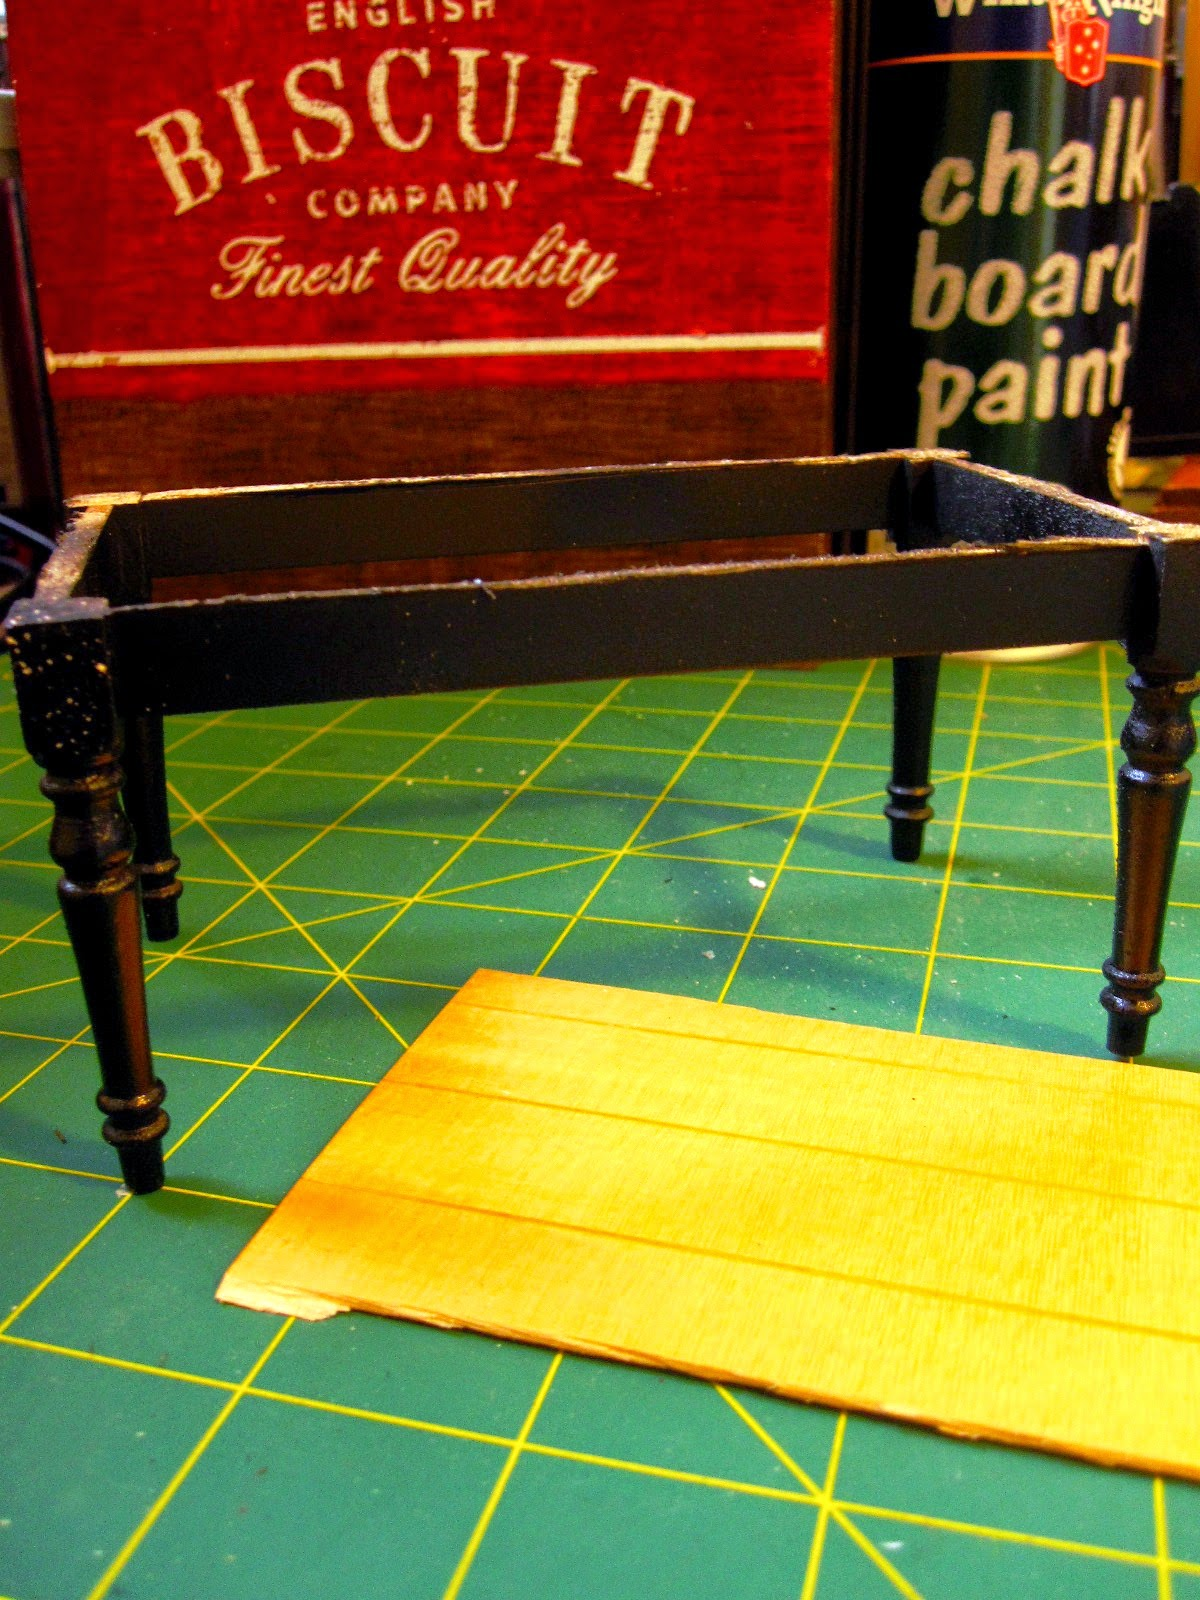 Miniature dining table leg assembly, painted black, sitting on a cutting mat with a spray can of chalkboard paint.